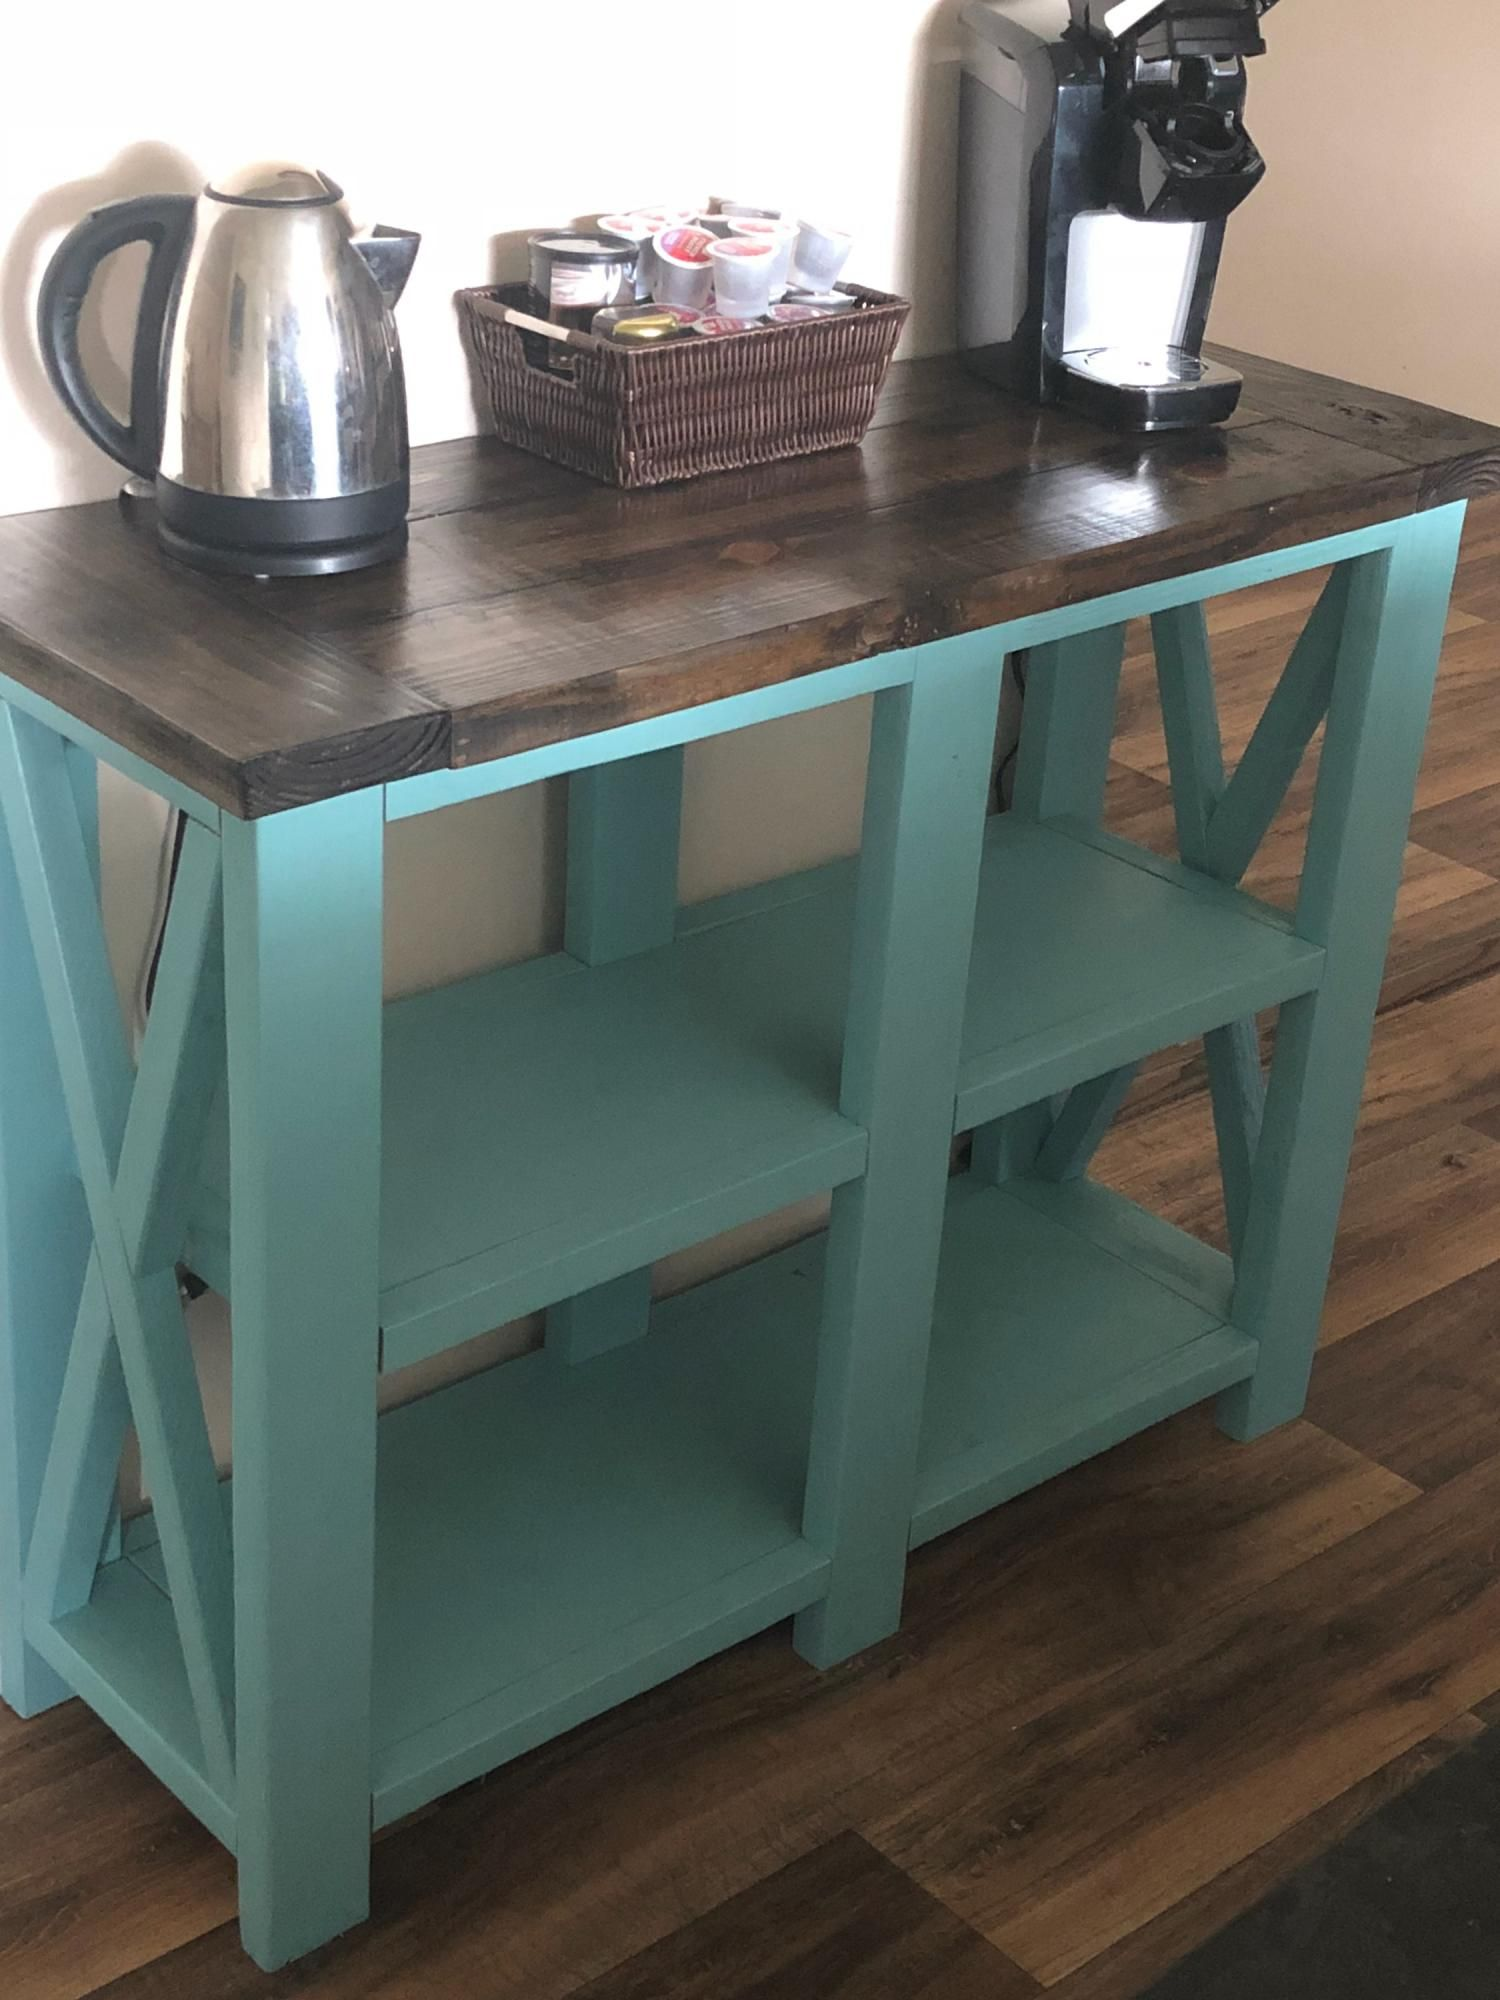 X Console Table Coffee Bar Ana White In 2020 Home Diy Diy Home Decor Projects Woodworking Projects Diy